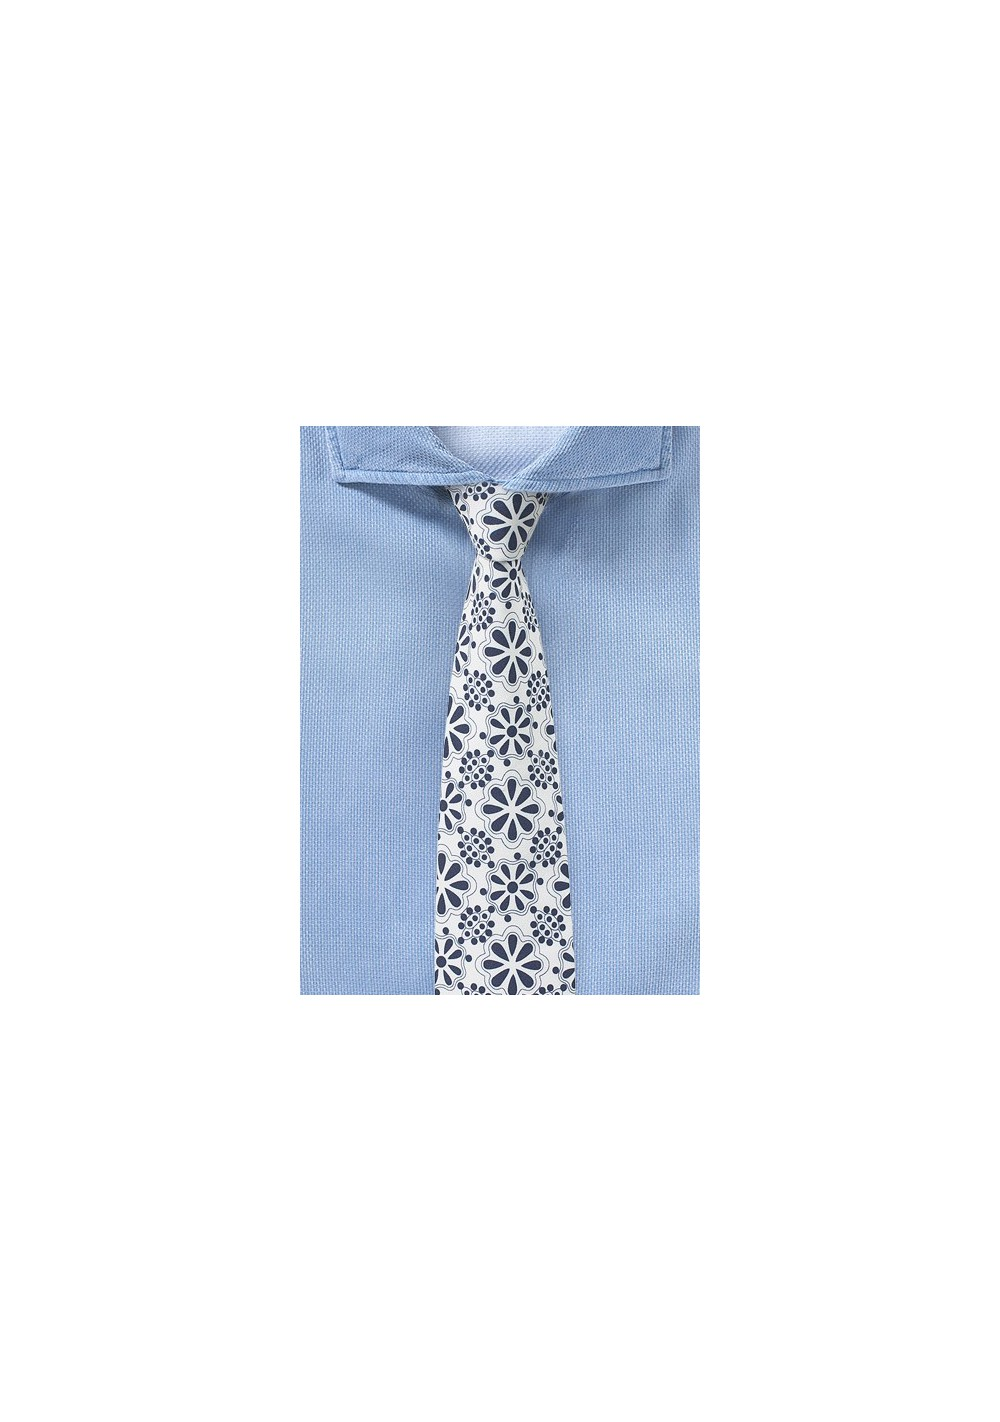 Floral Lace Print Cotton Tie in White and Blue